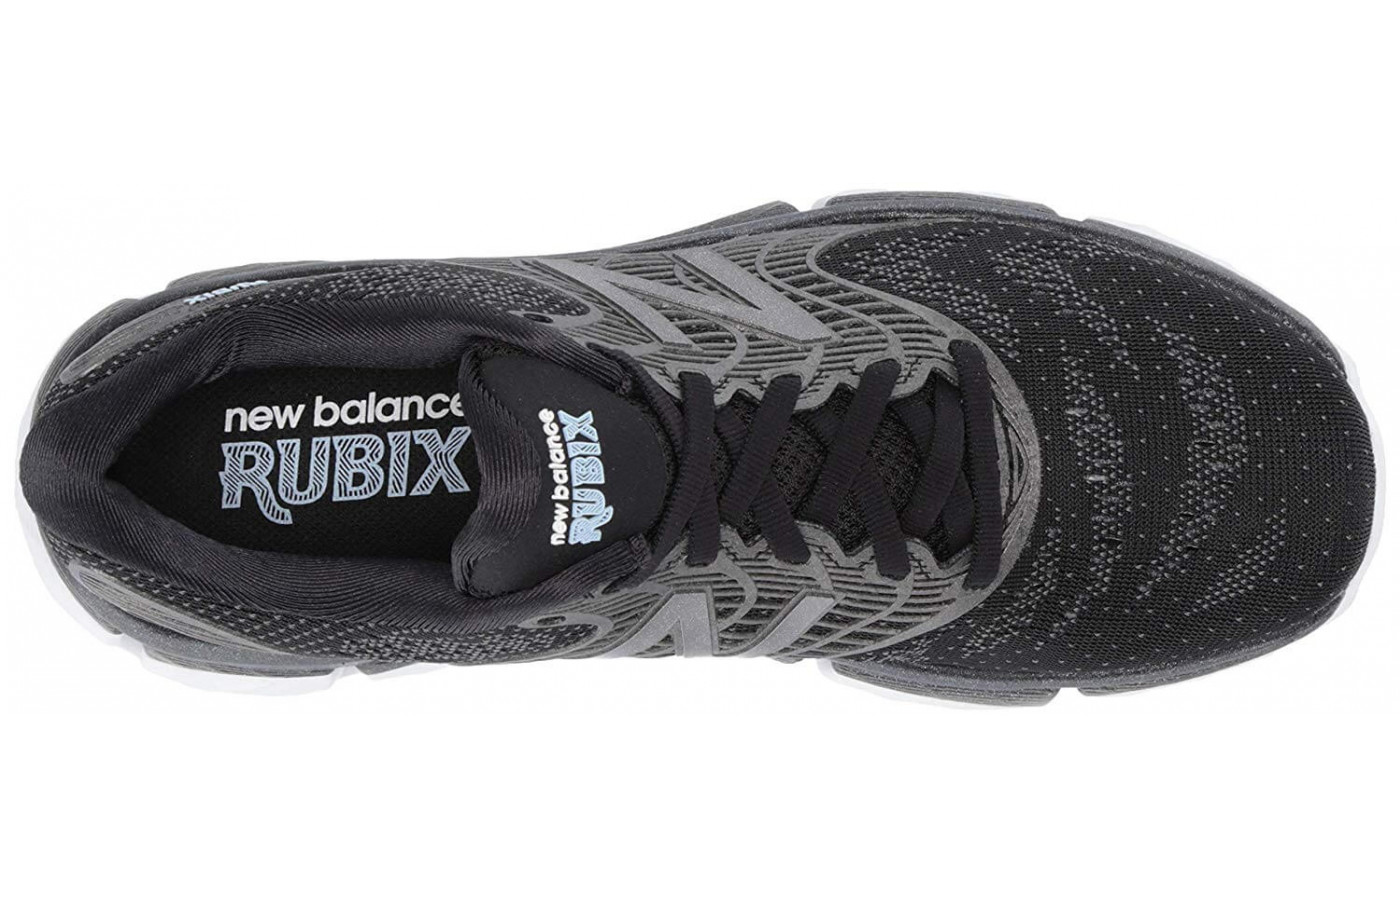 The Rubix features a Double Jacquard mesh upper with TPU overlays